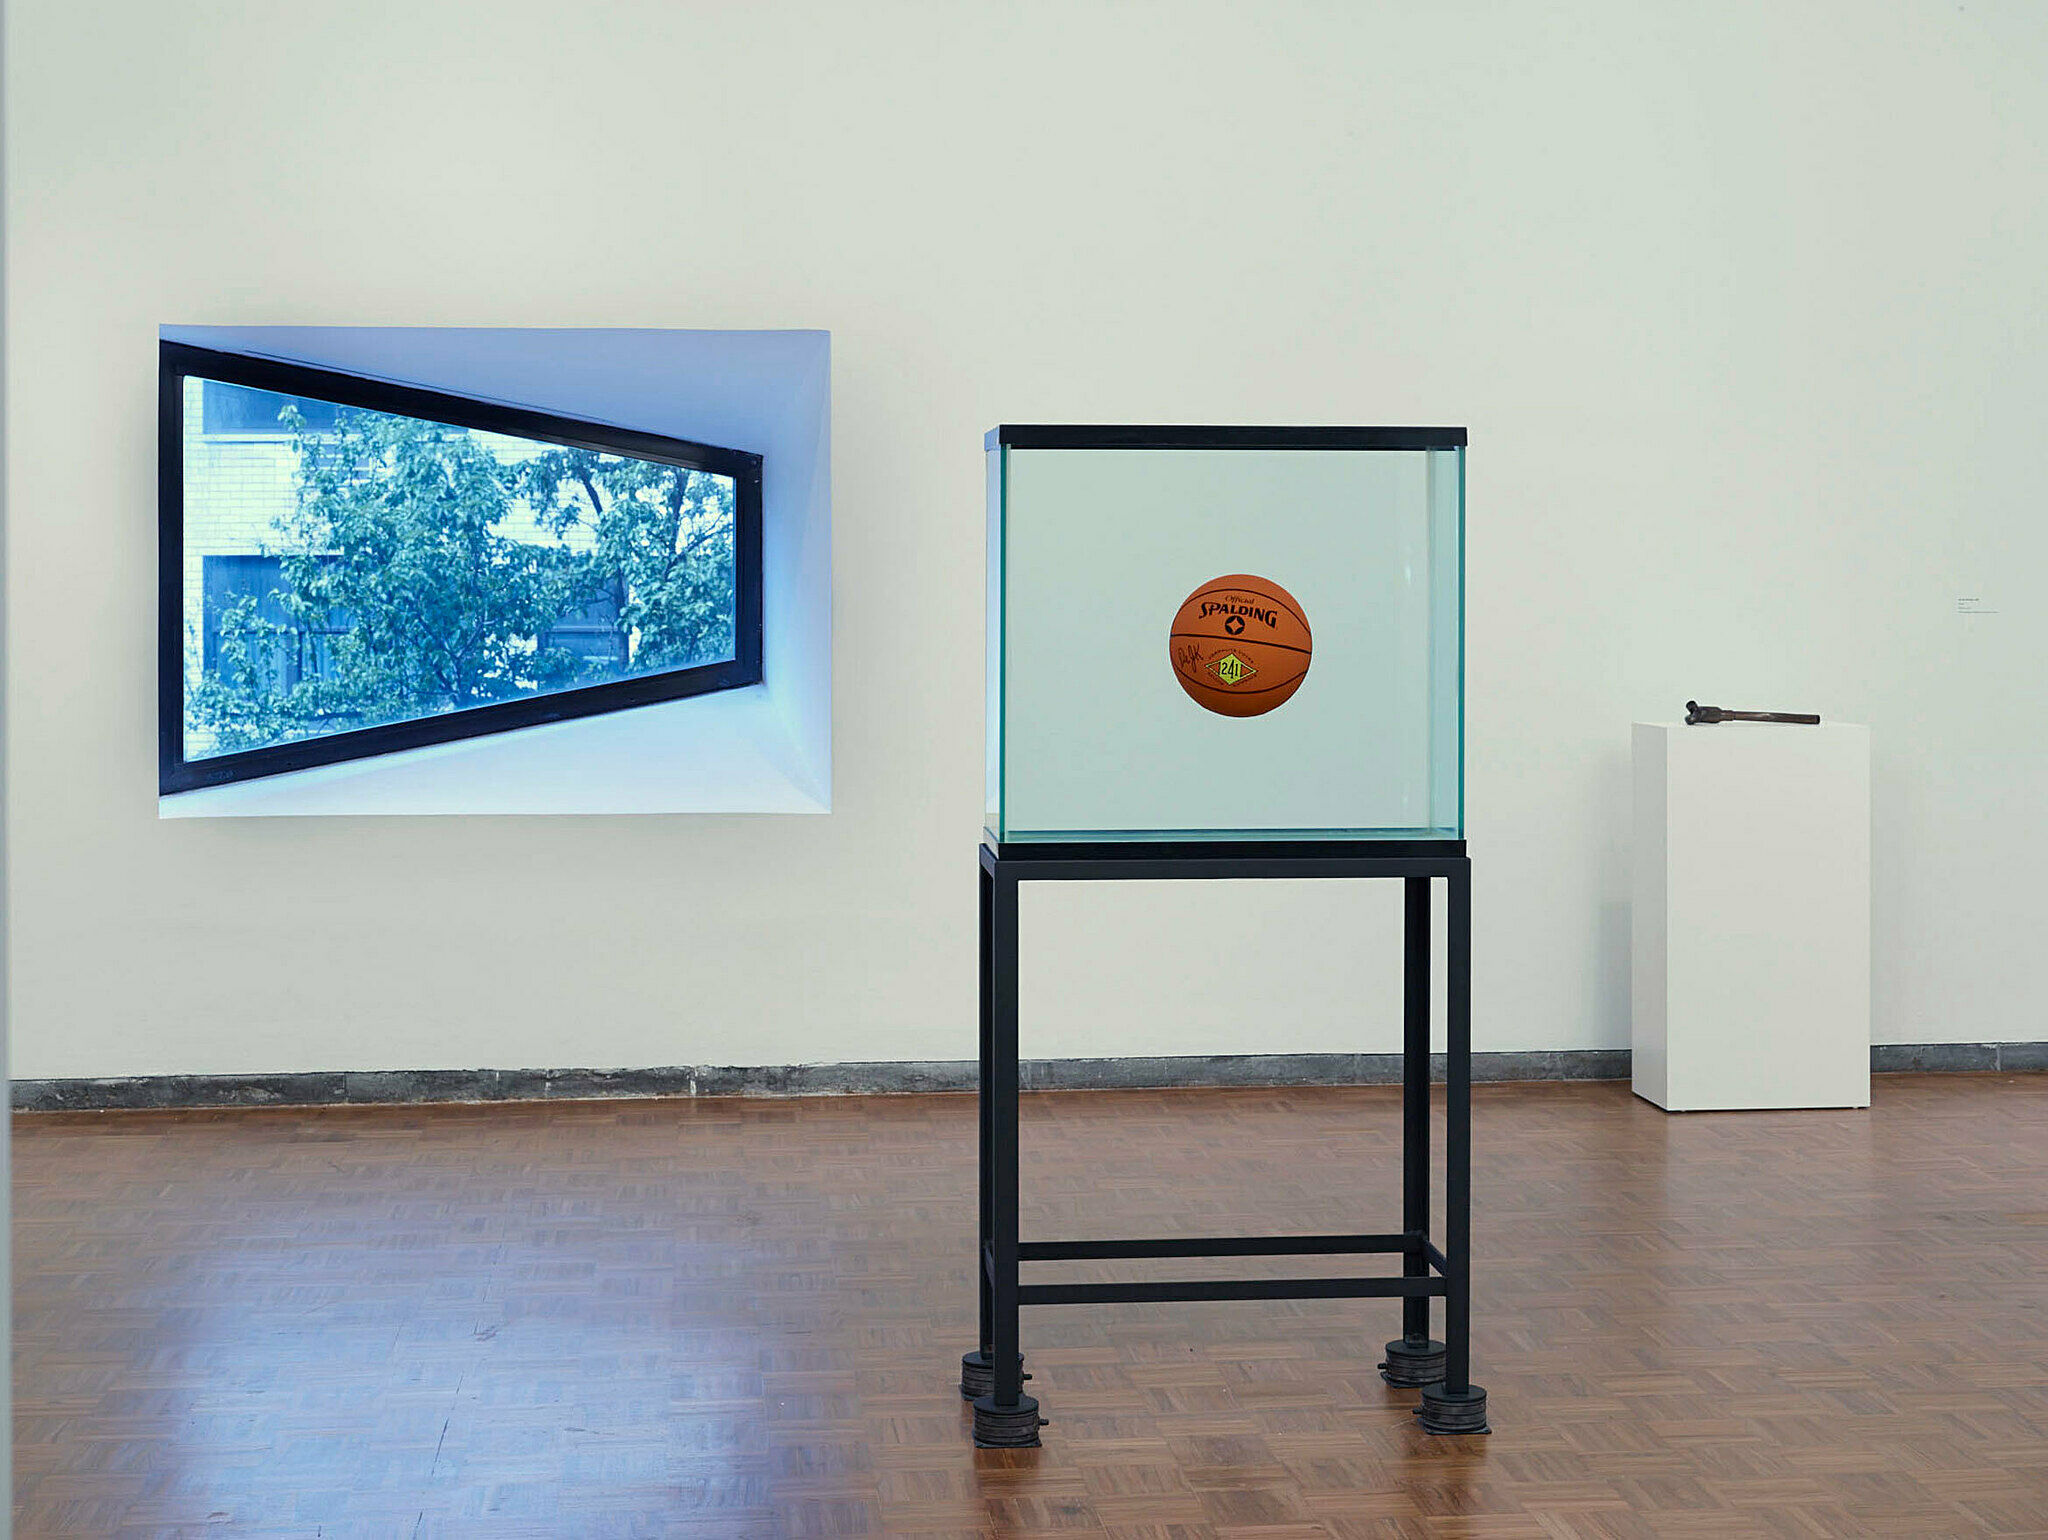 Suspend basketball sculpture with a window behind it.